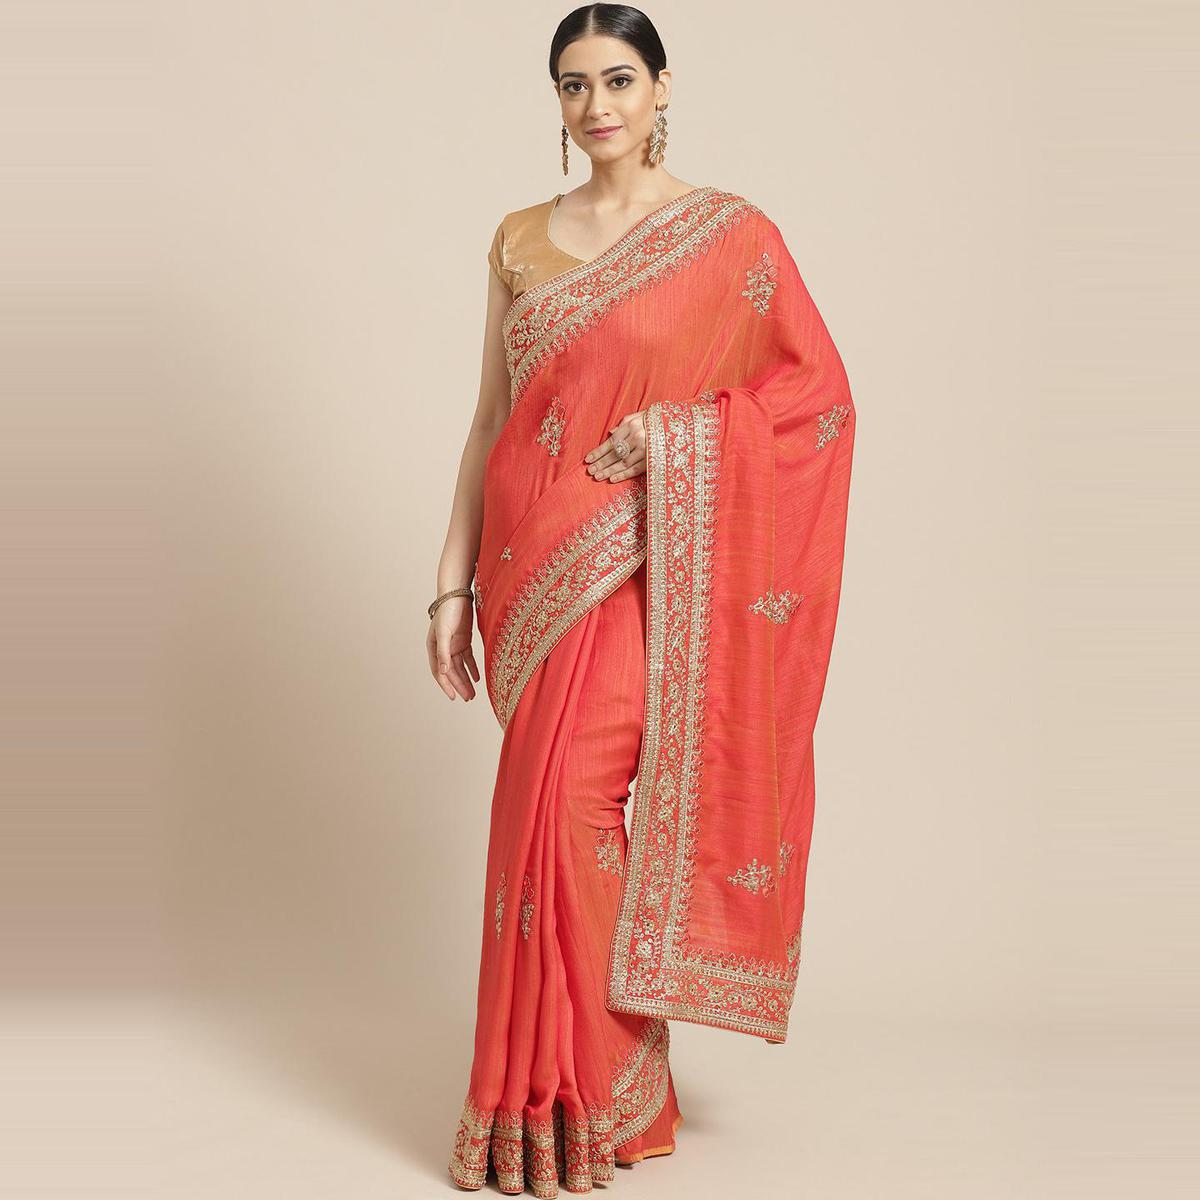 Pache Women's Orange Floral Embroidered Silk Georgette Saree With Unstitched Blouse Piece